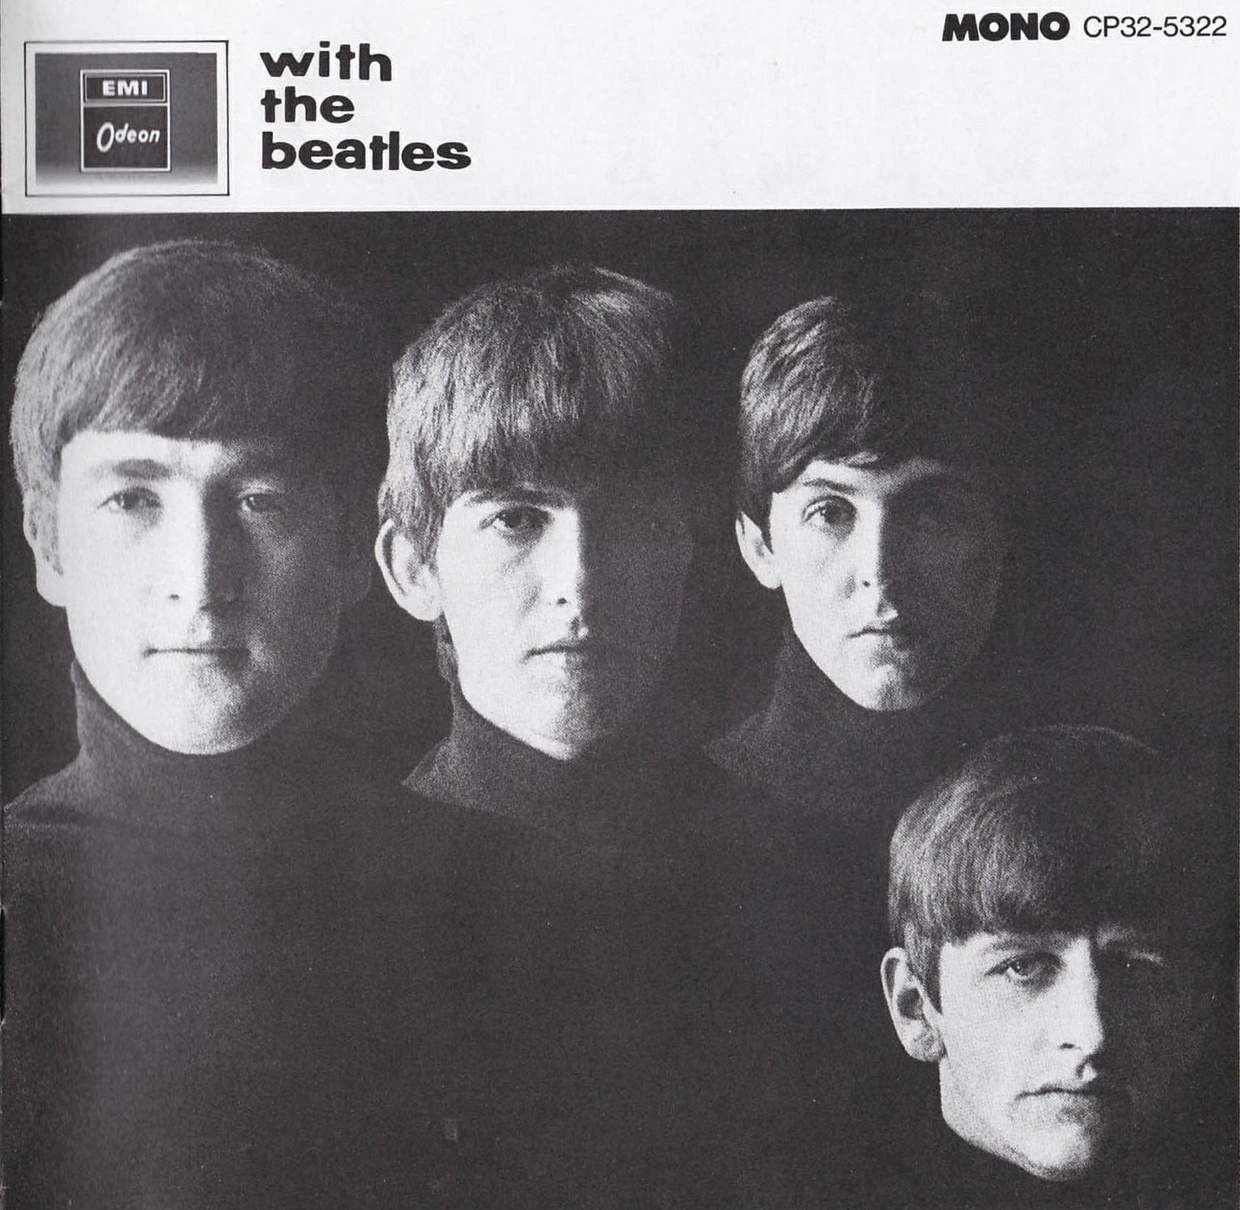 The Beatles - With The Beatles (1963)